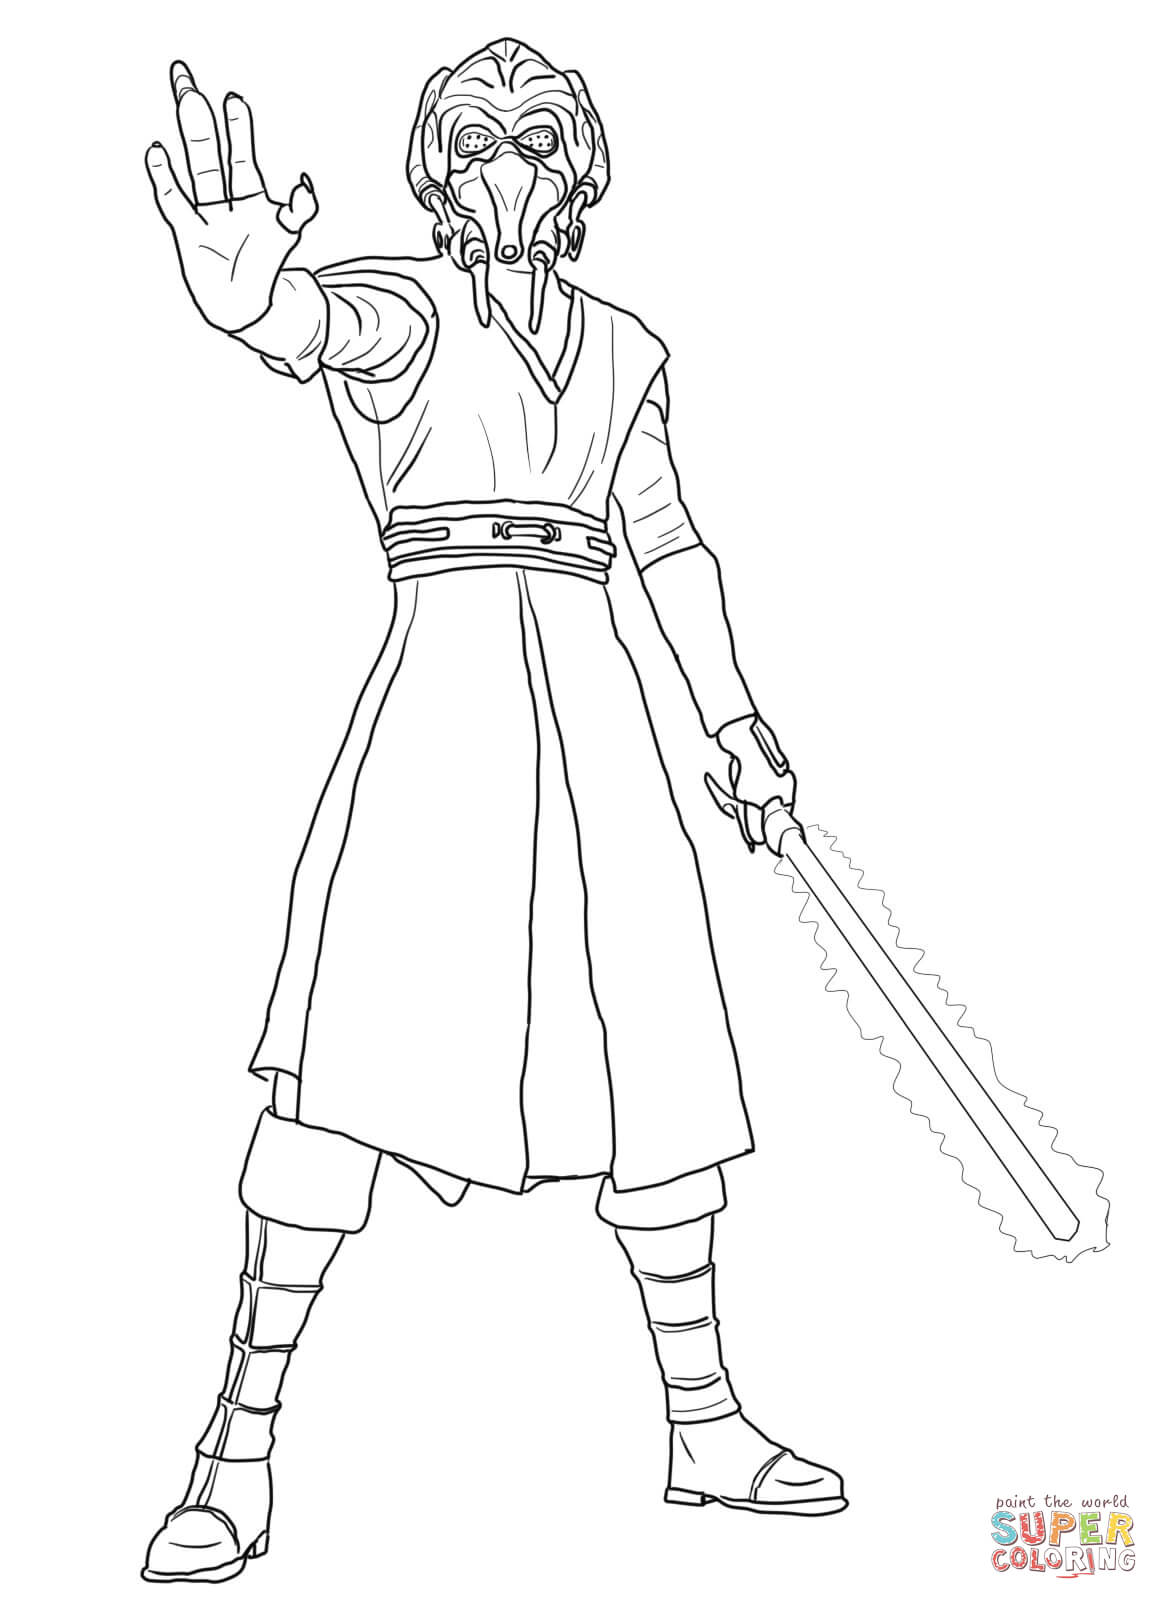 Plo koon coloring pages